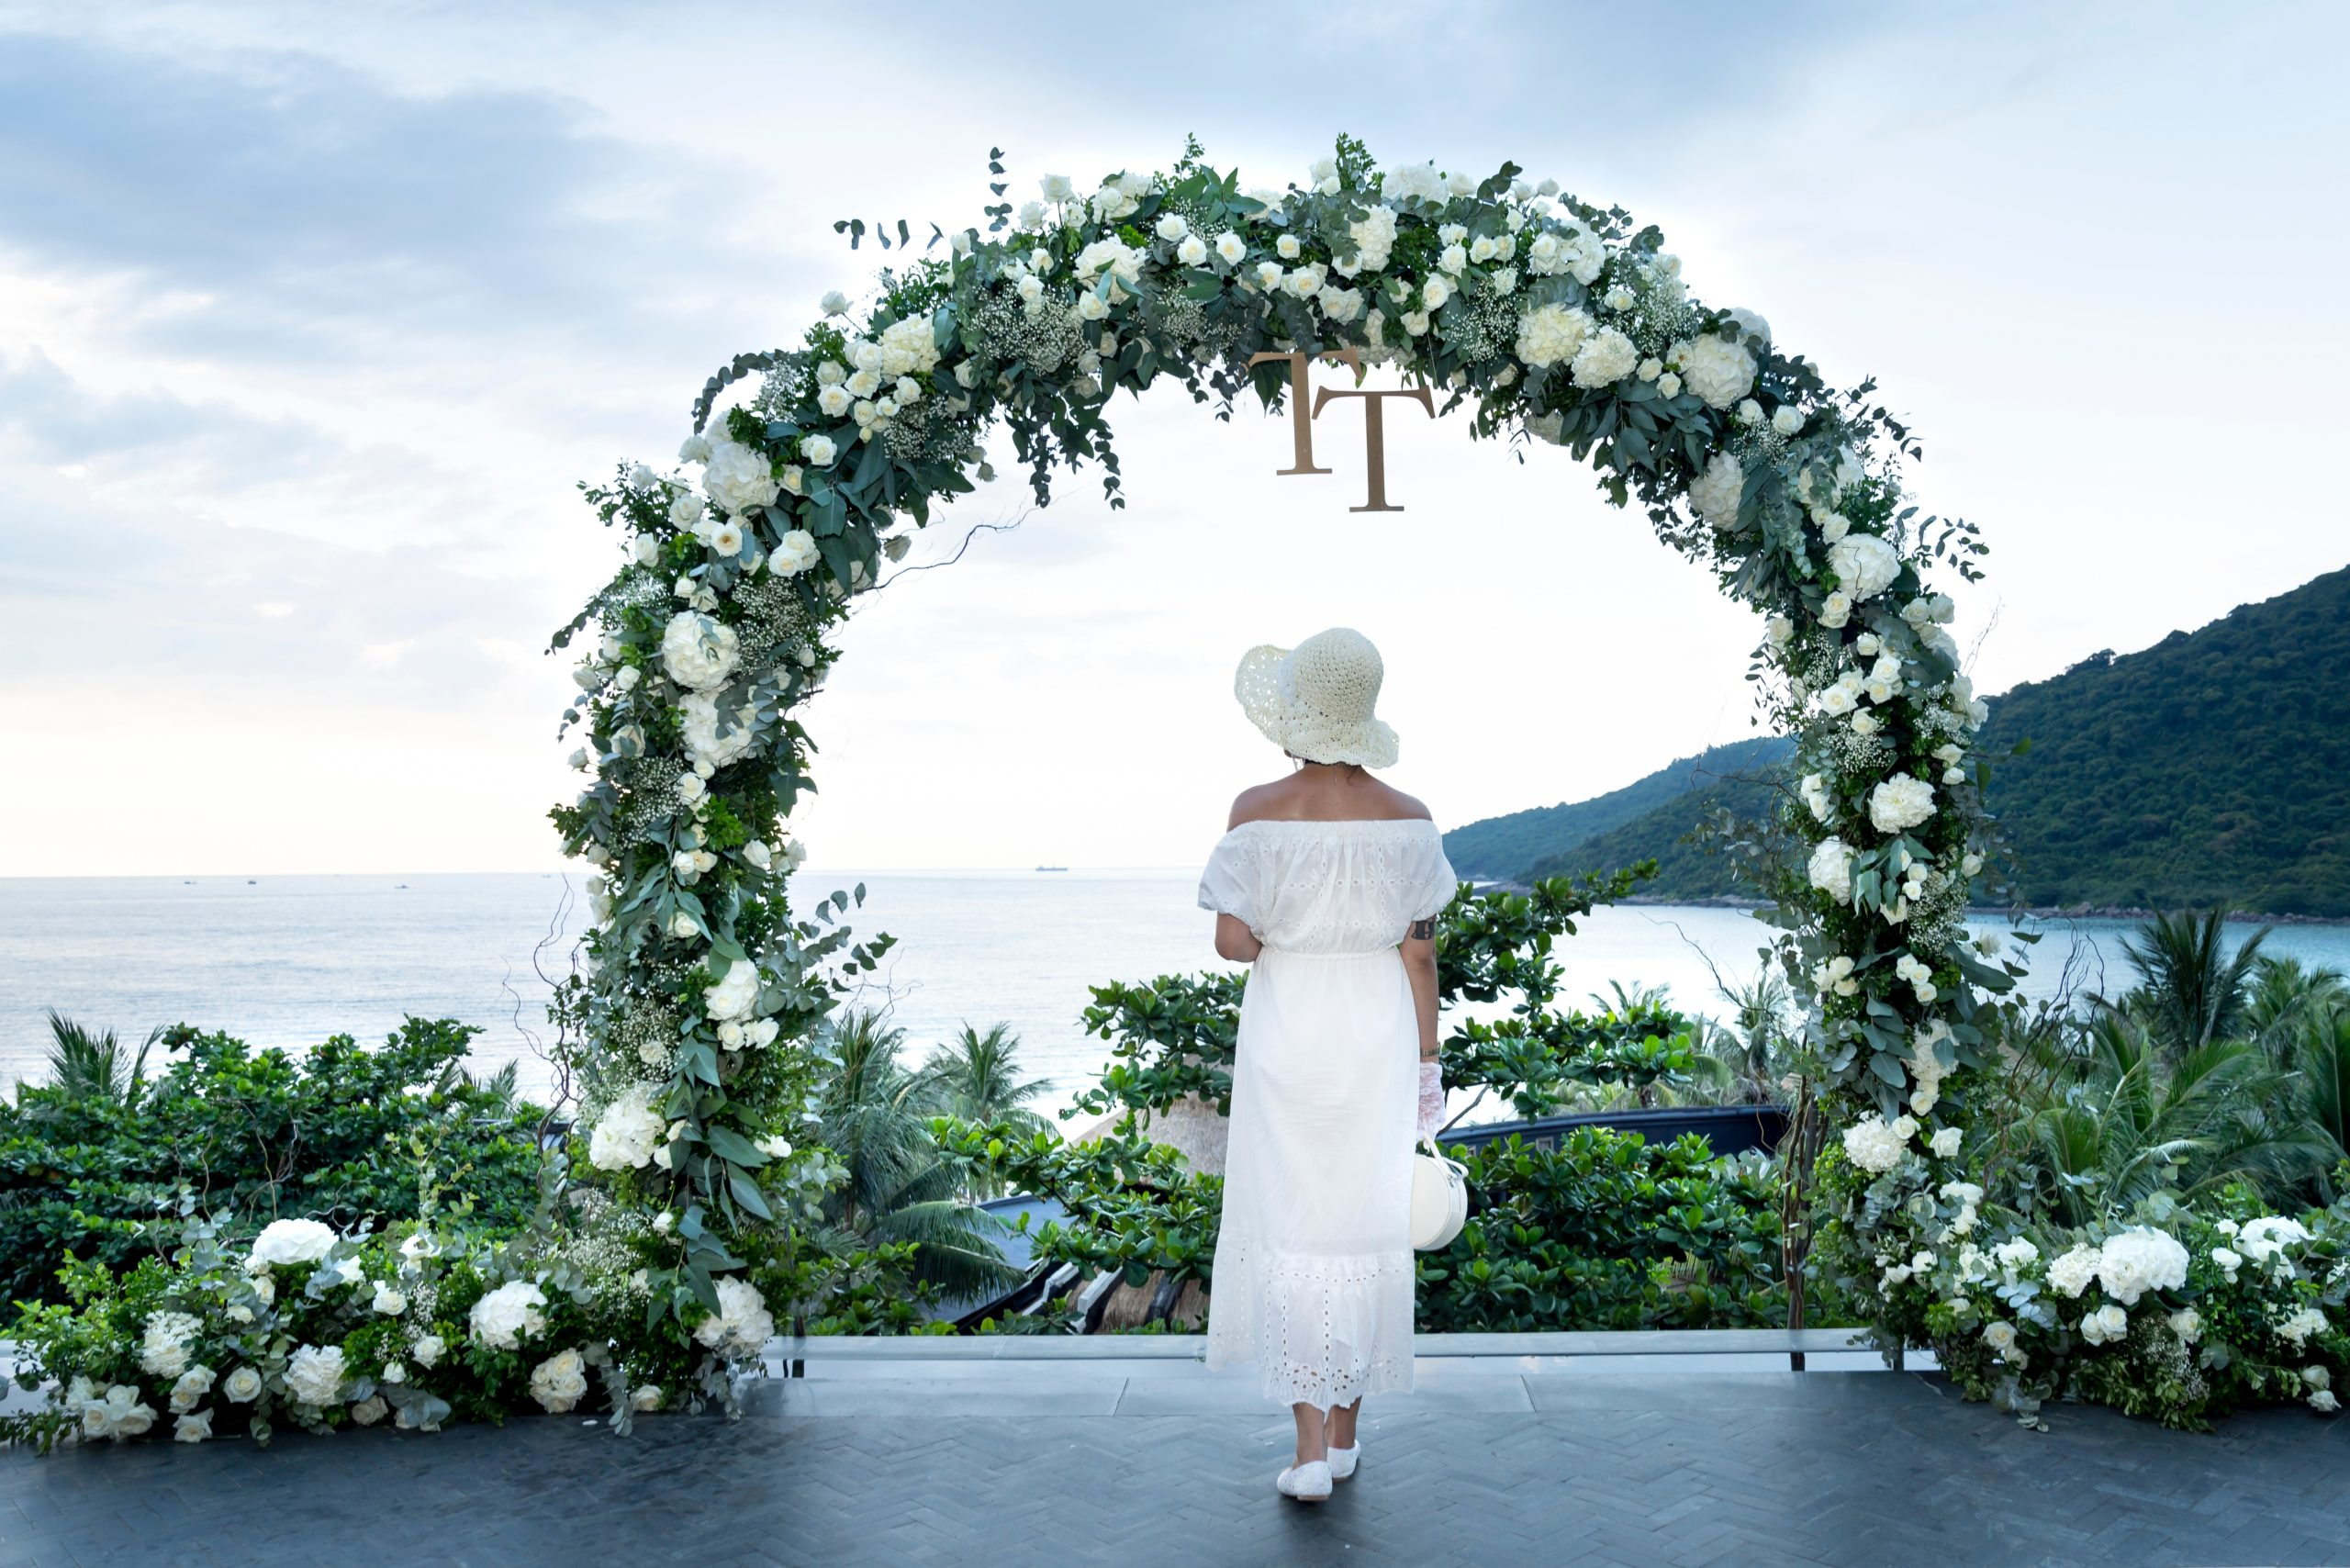 photo-of-woman-wearing-white-dress-near-flower-arbor-2476636